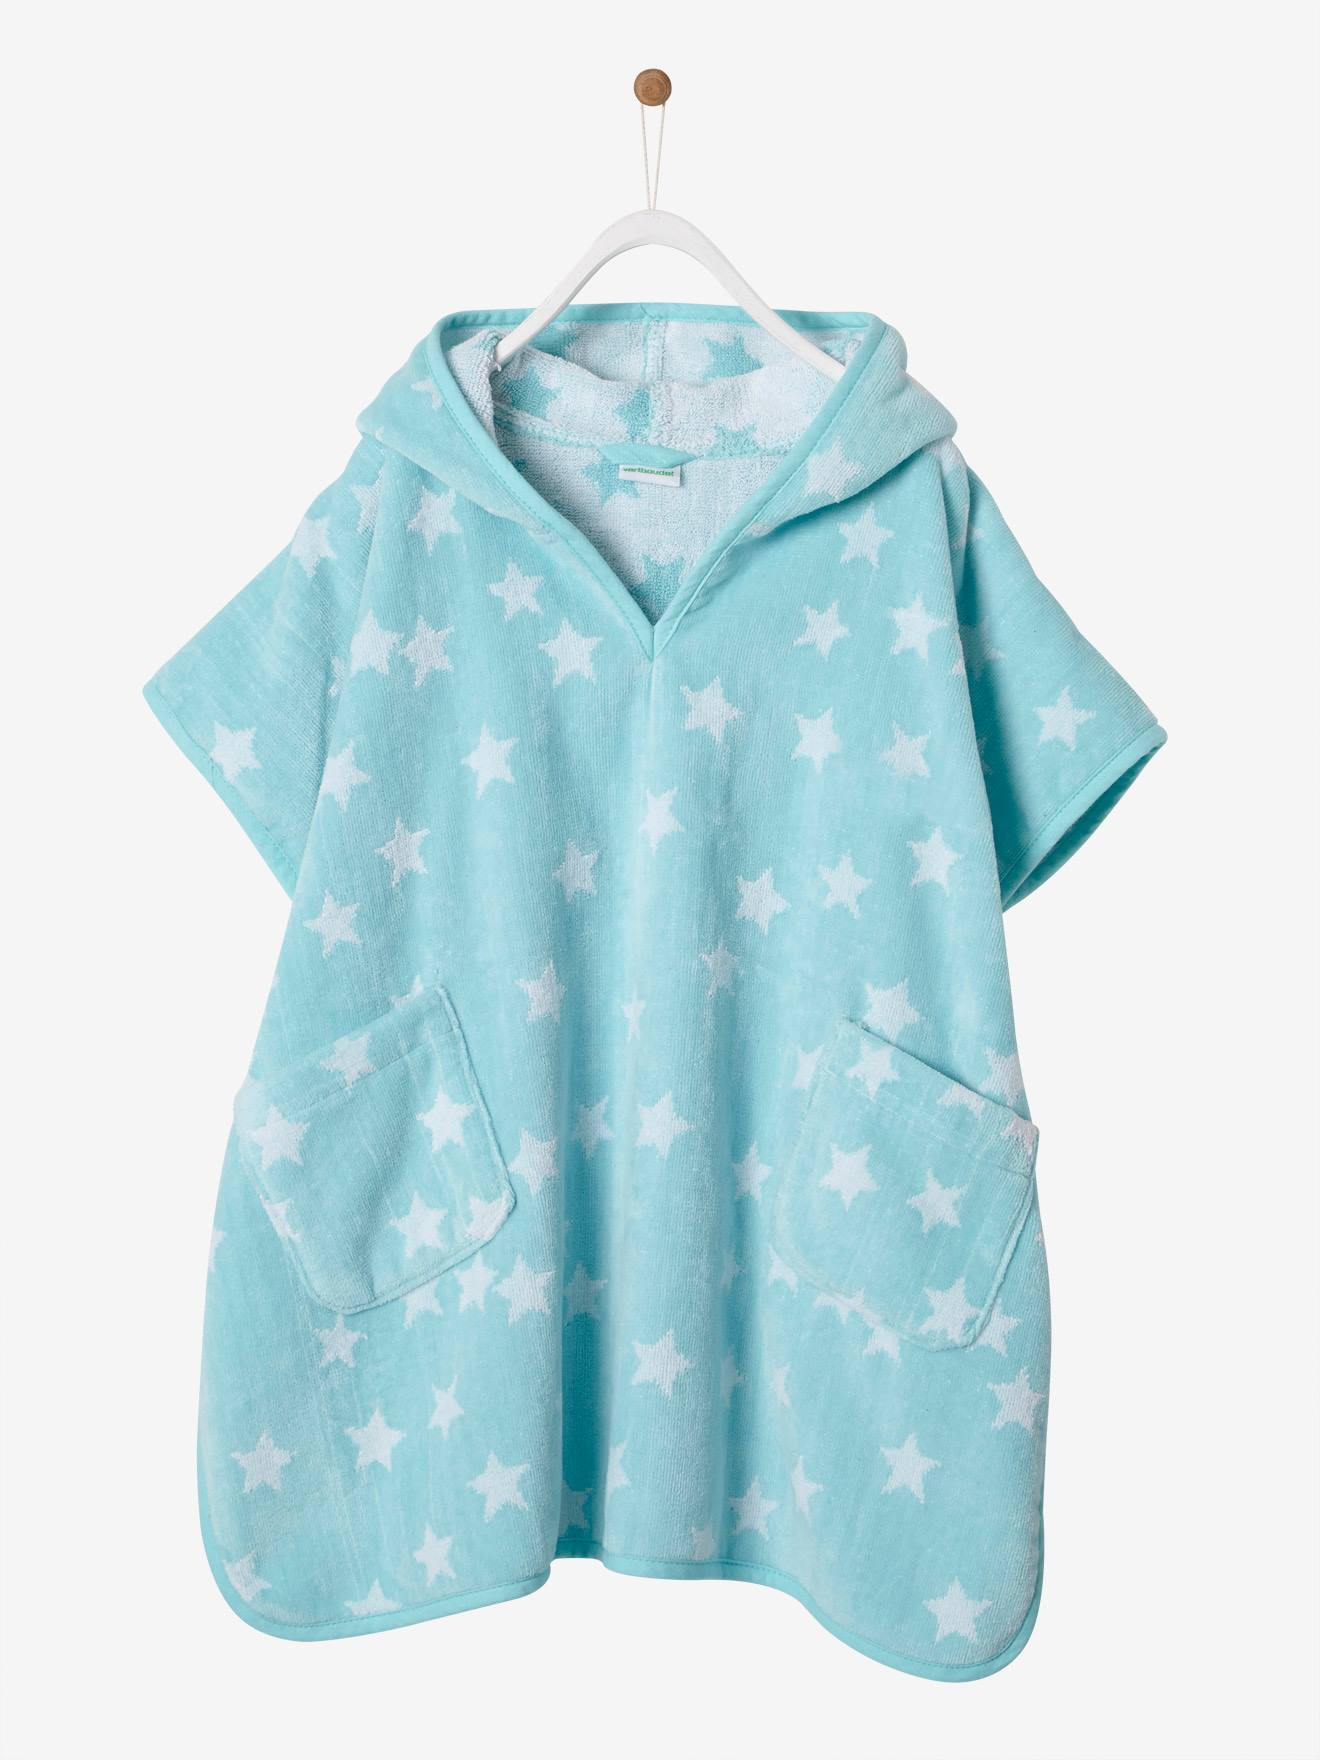 Hooded Bath Poncho with Star Print for Children - white light all over  printed, Bedding & Decor